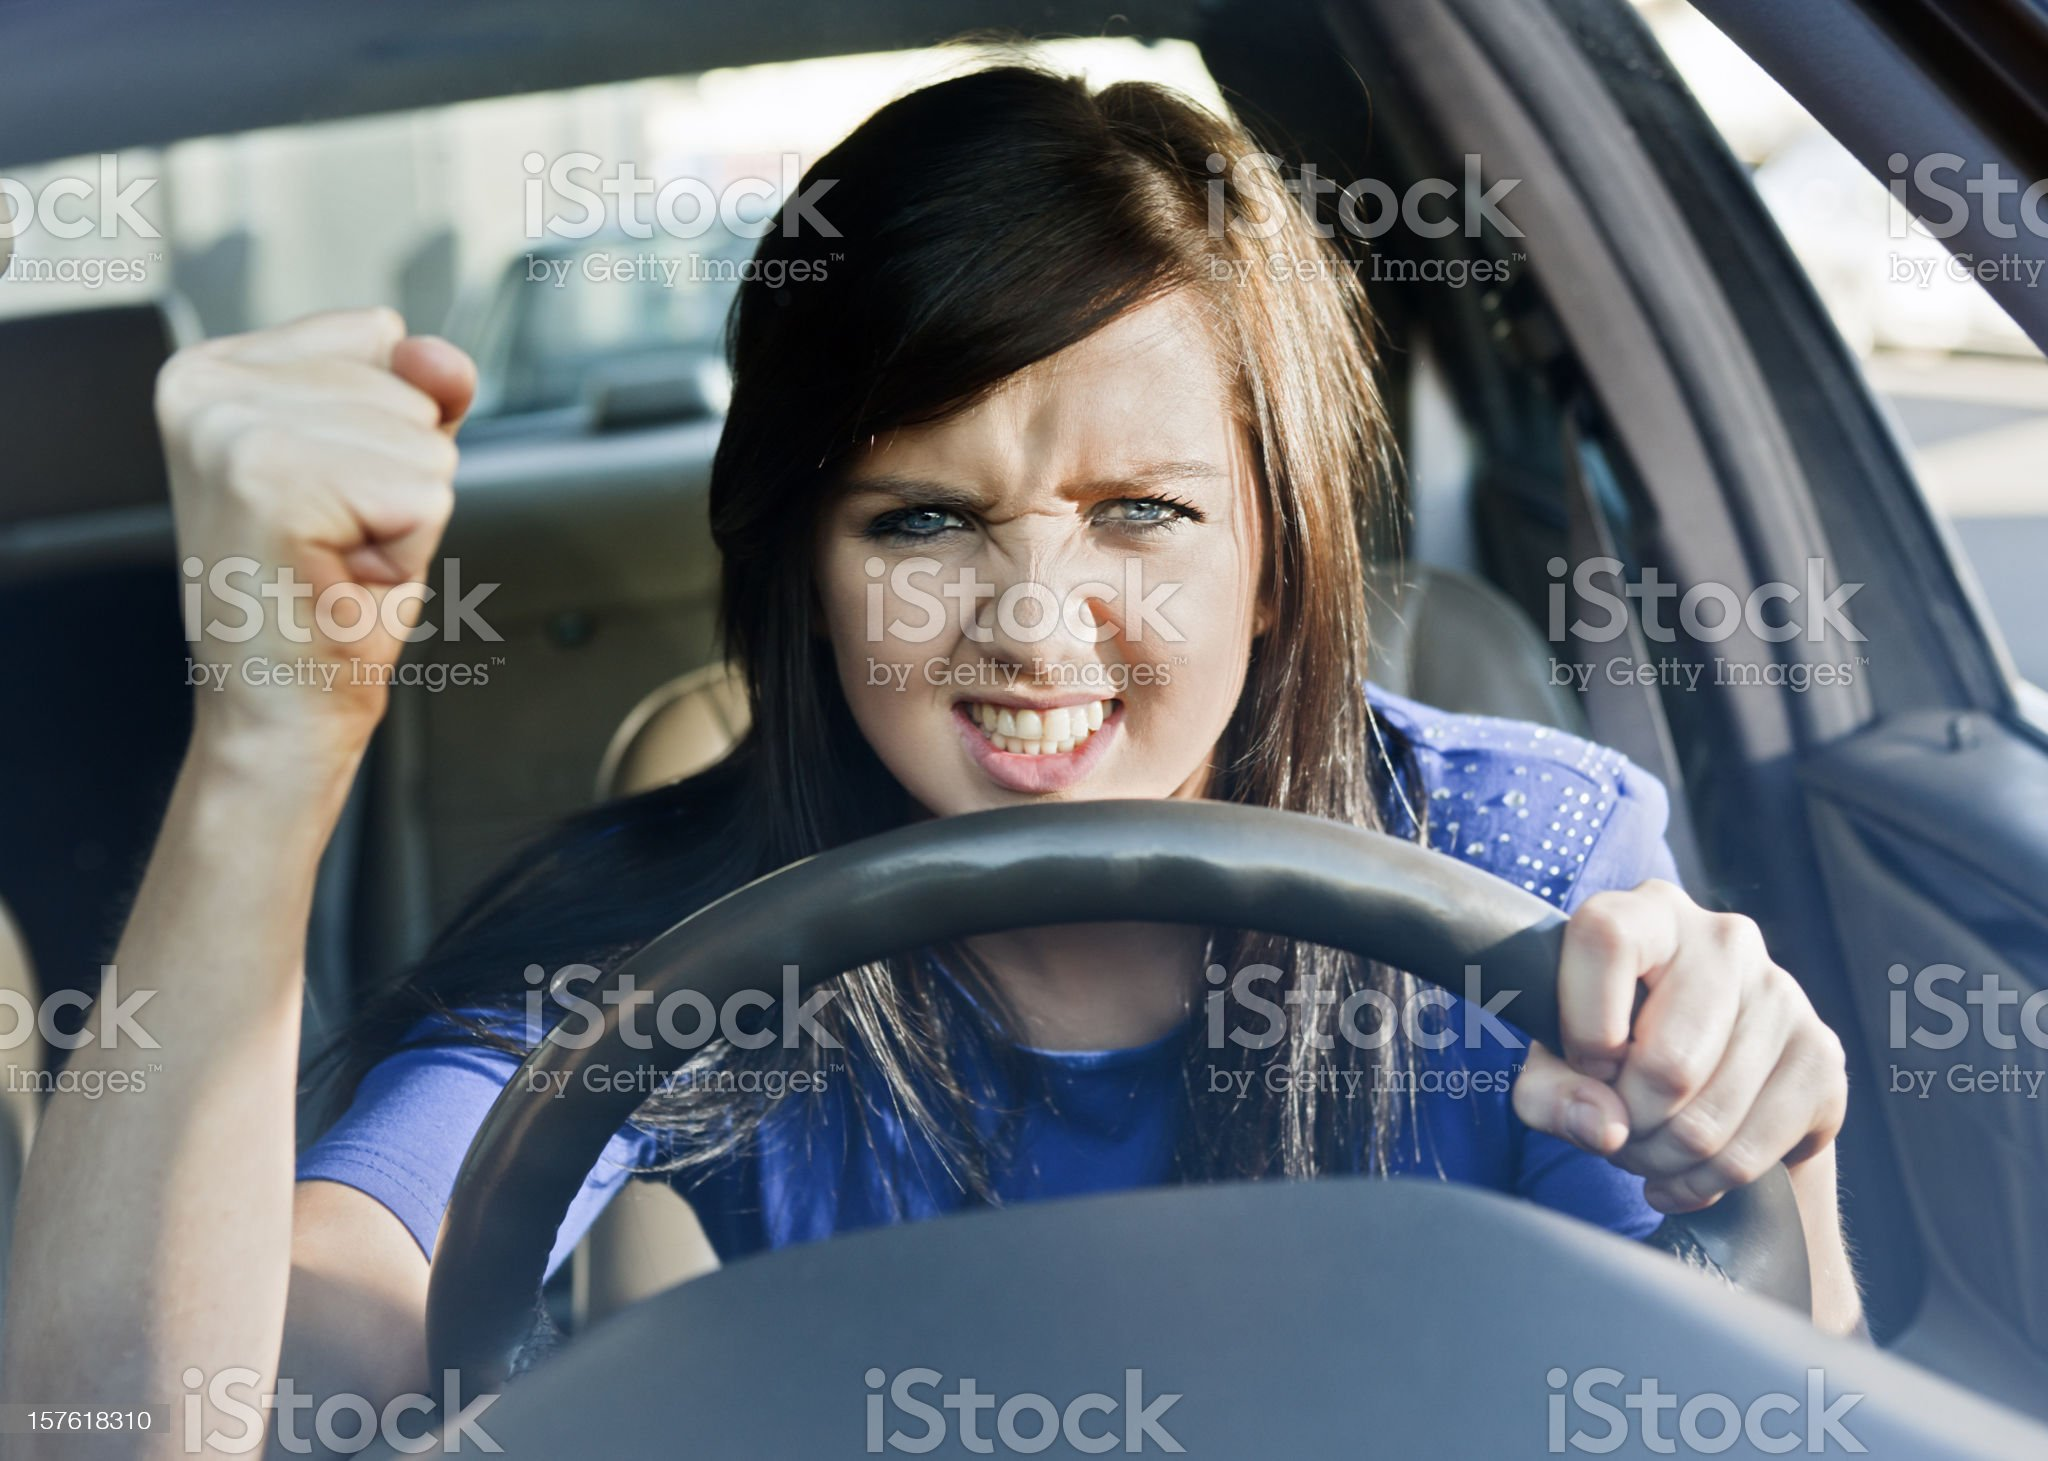 Young woman driving car shakes her fist in frustrated fury royalty-free stock photo